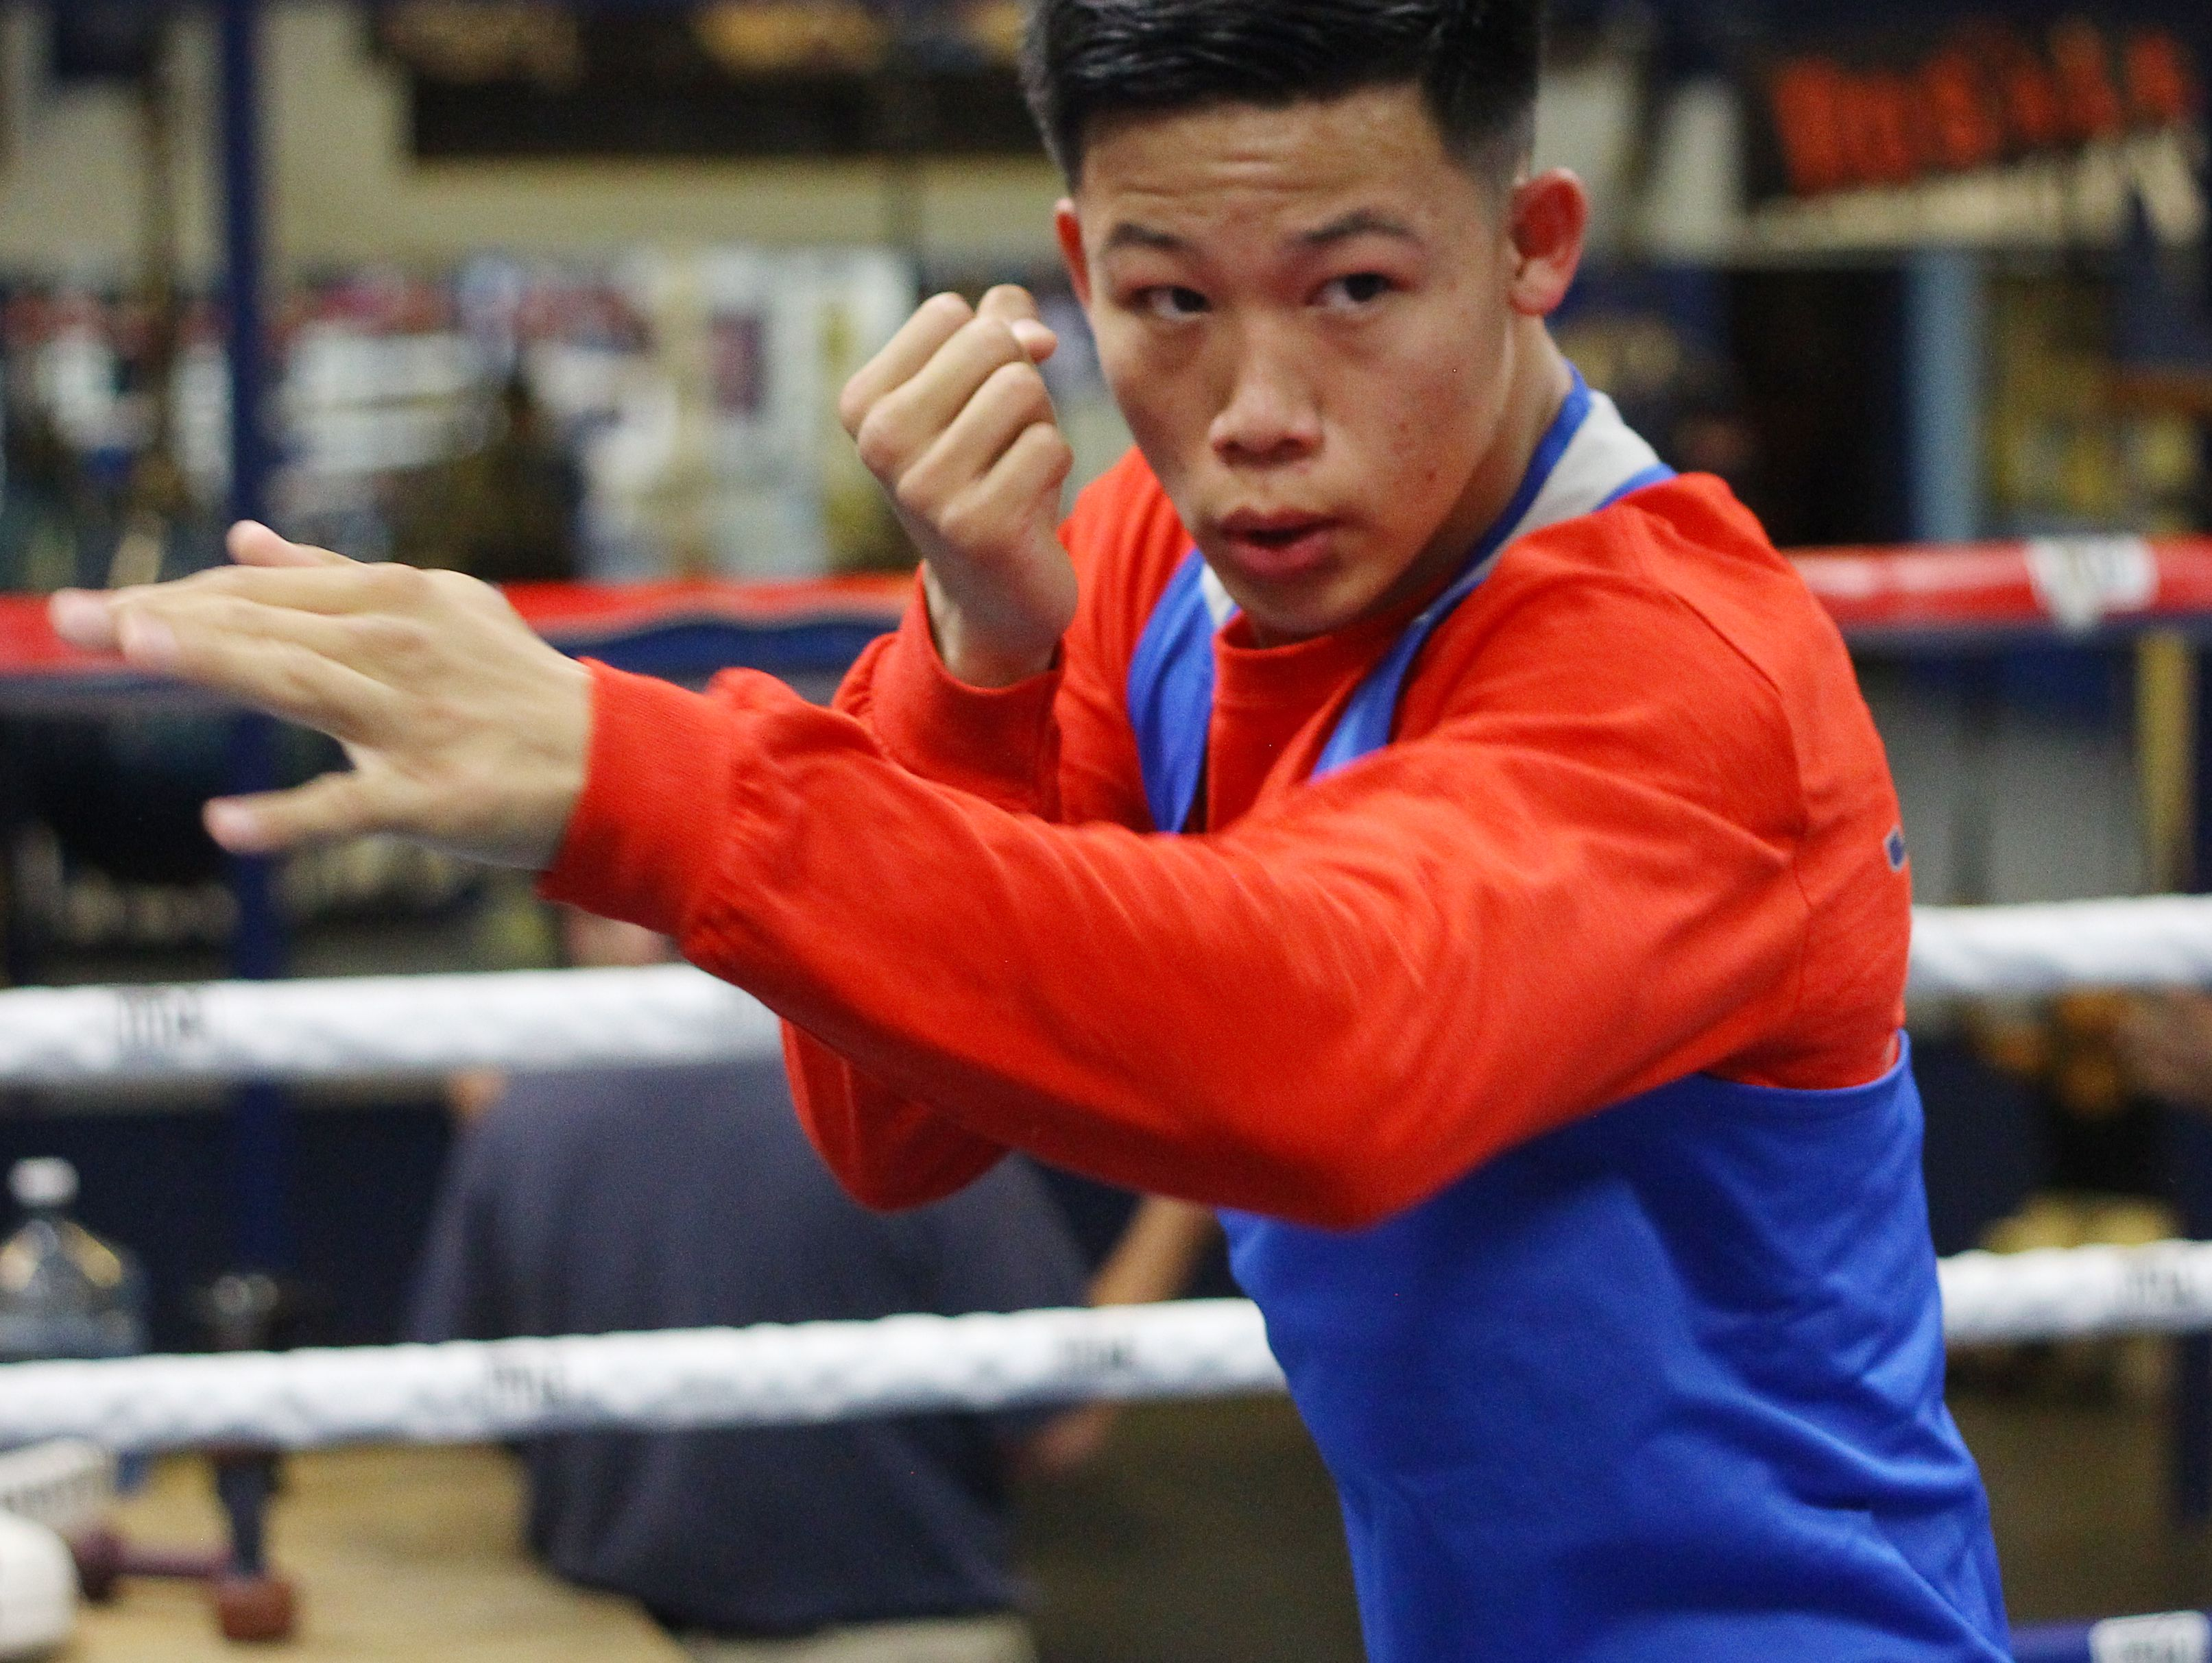 Brandon Lee warms up for a sparring session at the Coachella Boxing Club as he prepares to debut as a professional boxer this December.